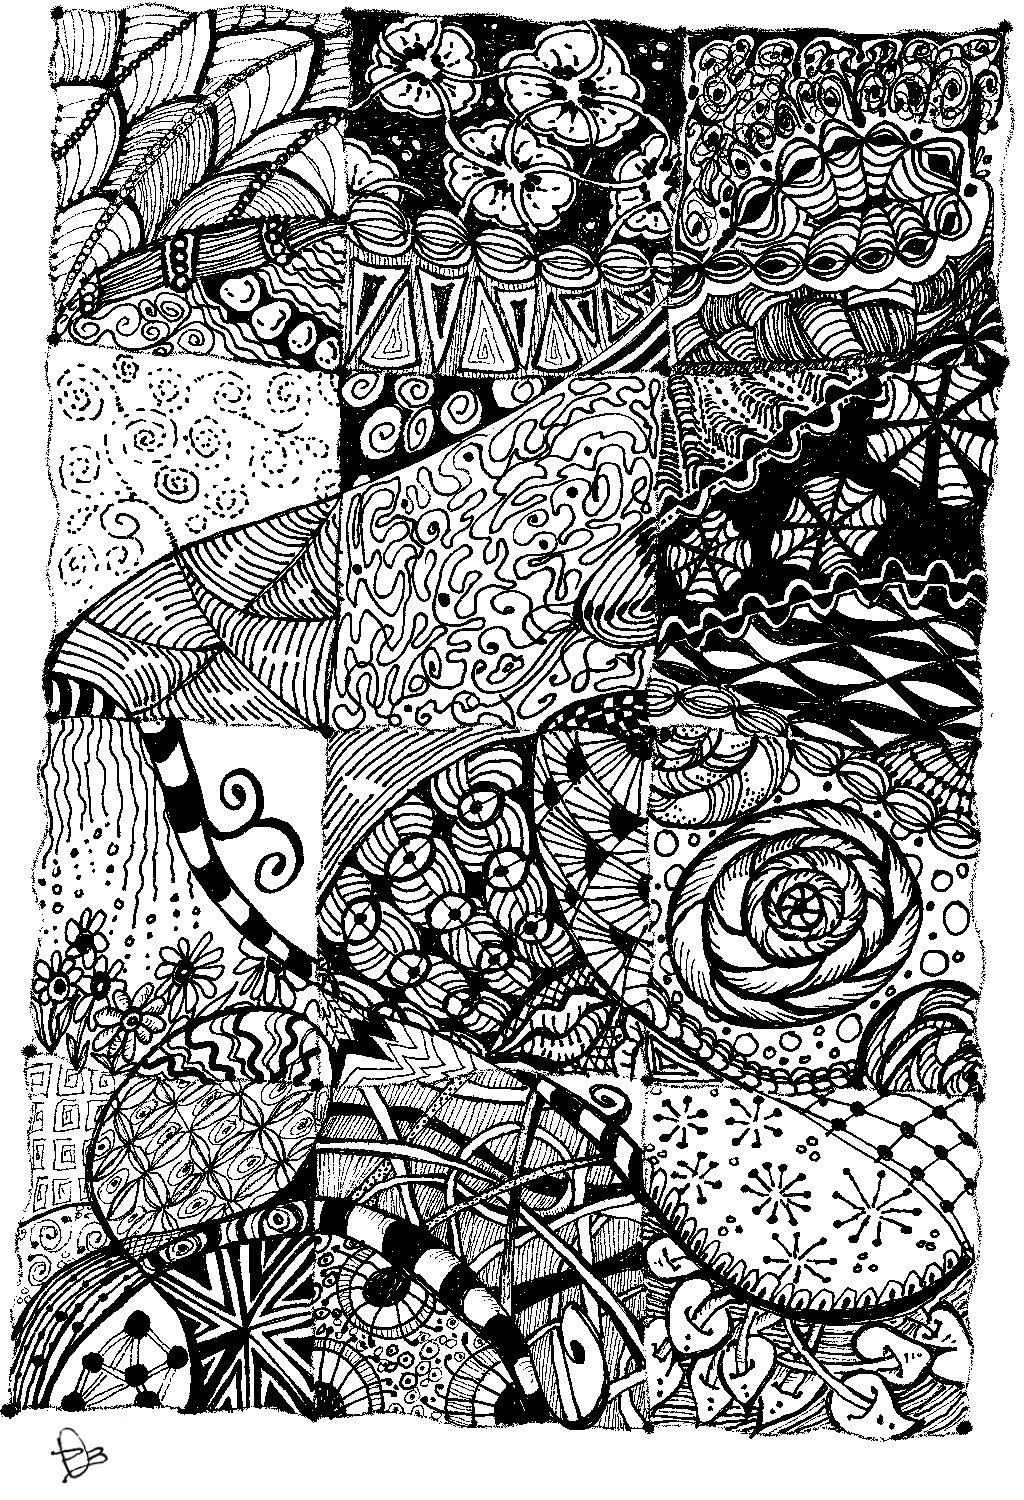 dobriendesign: Zentangle Quilt Inspiration